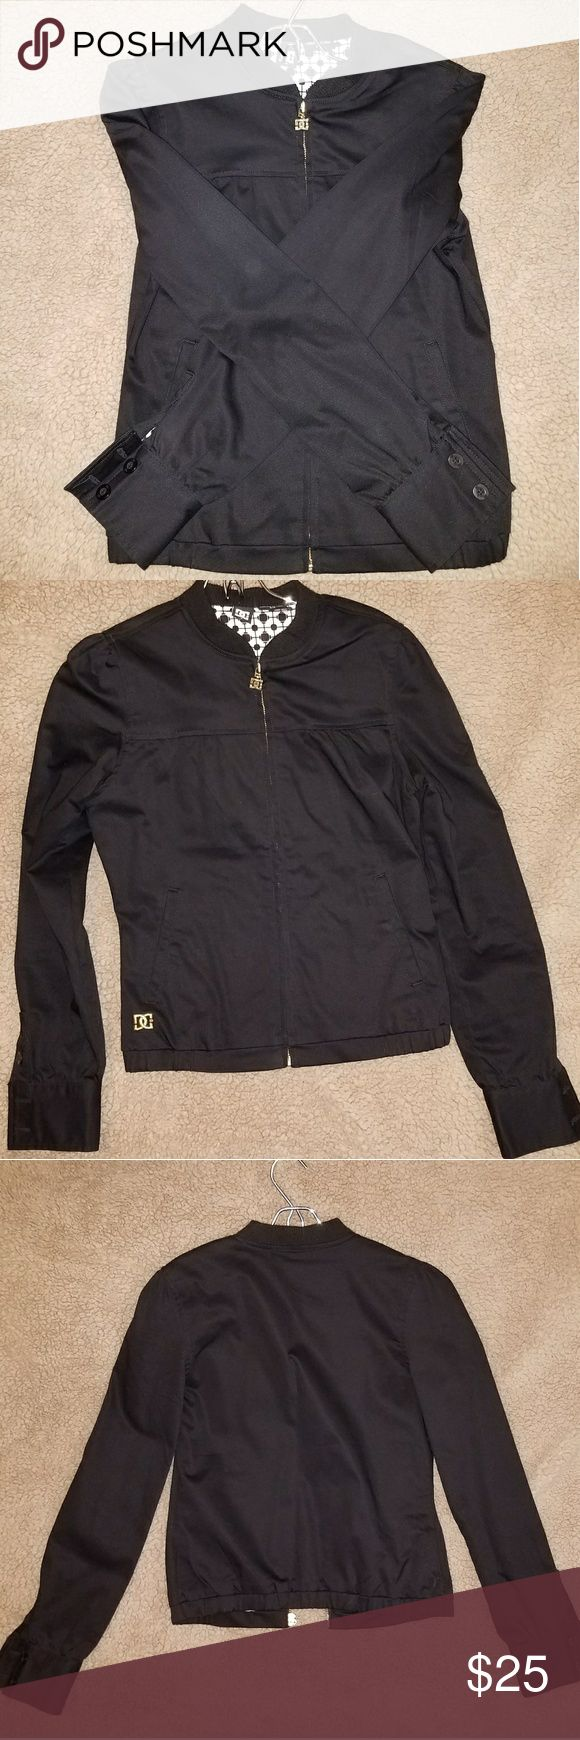 DC Shoe Co Women's Light Weight Jacket Size S Women's DC Shoe Co Black Light Weight Jacket Size Small. Black twill type of fabric, Zip up, front pockets, pleated yoke, pleated shoulders, button cuffs, DC zipper pull, DC embroidered in gold on front right hip, DC printed light weight lining. Super cute dressed up or down. Please ask questions. Comes from a pet friendly home. DC Jackets & Coats